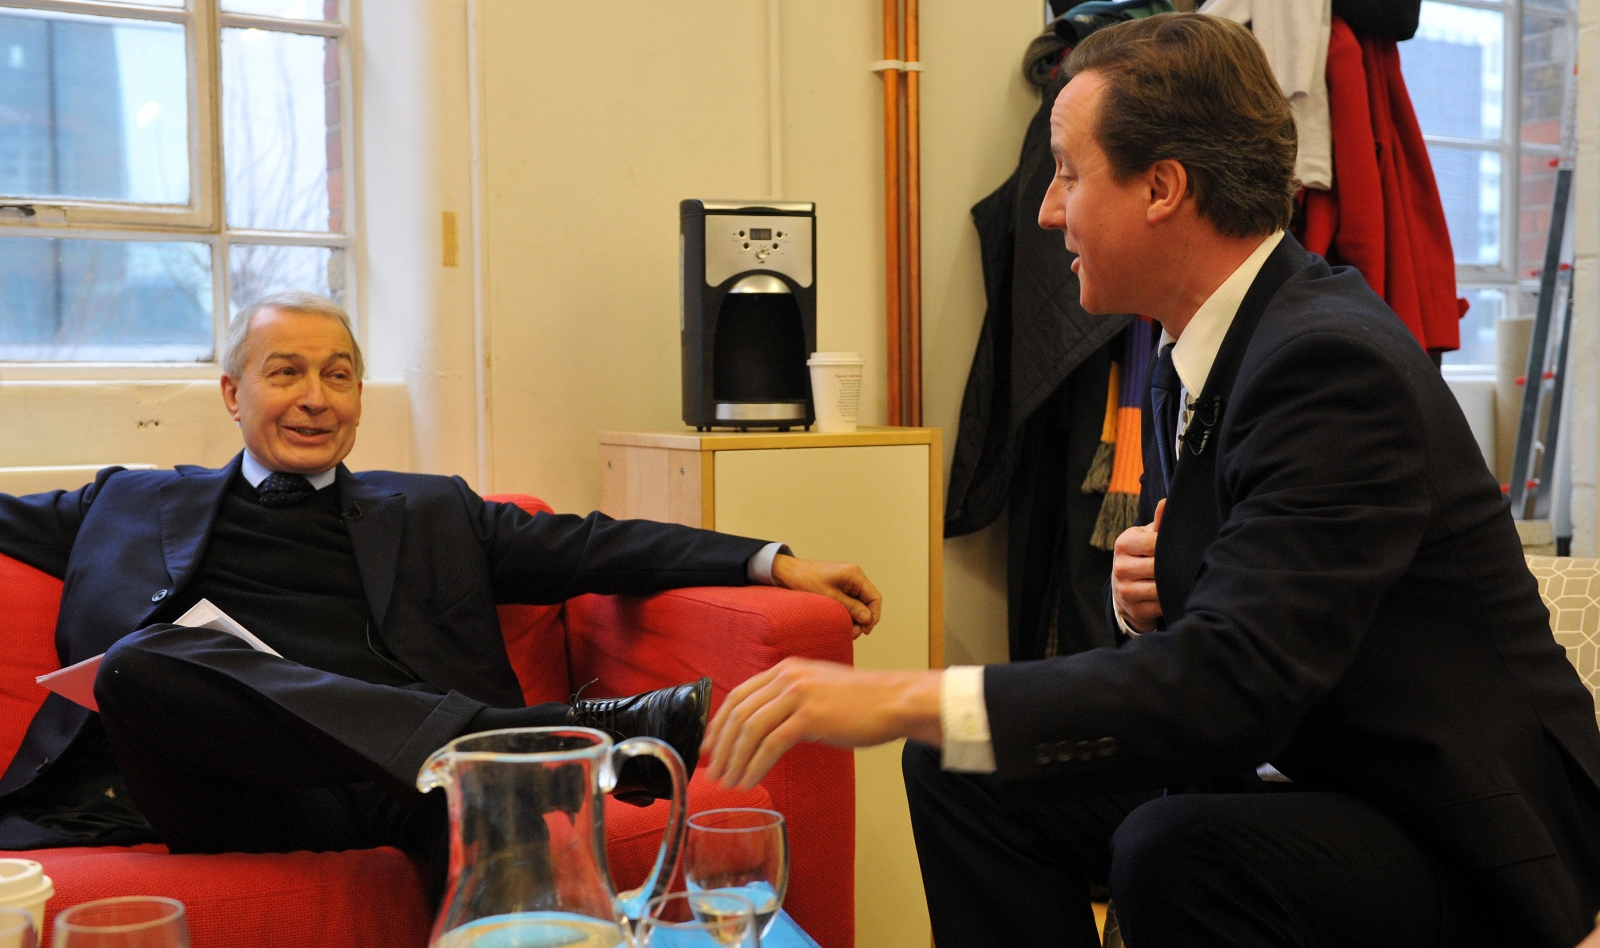 Frank Field and David Cameron